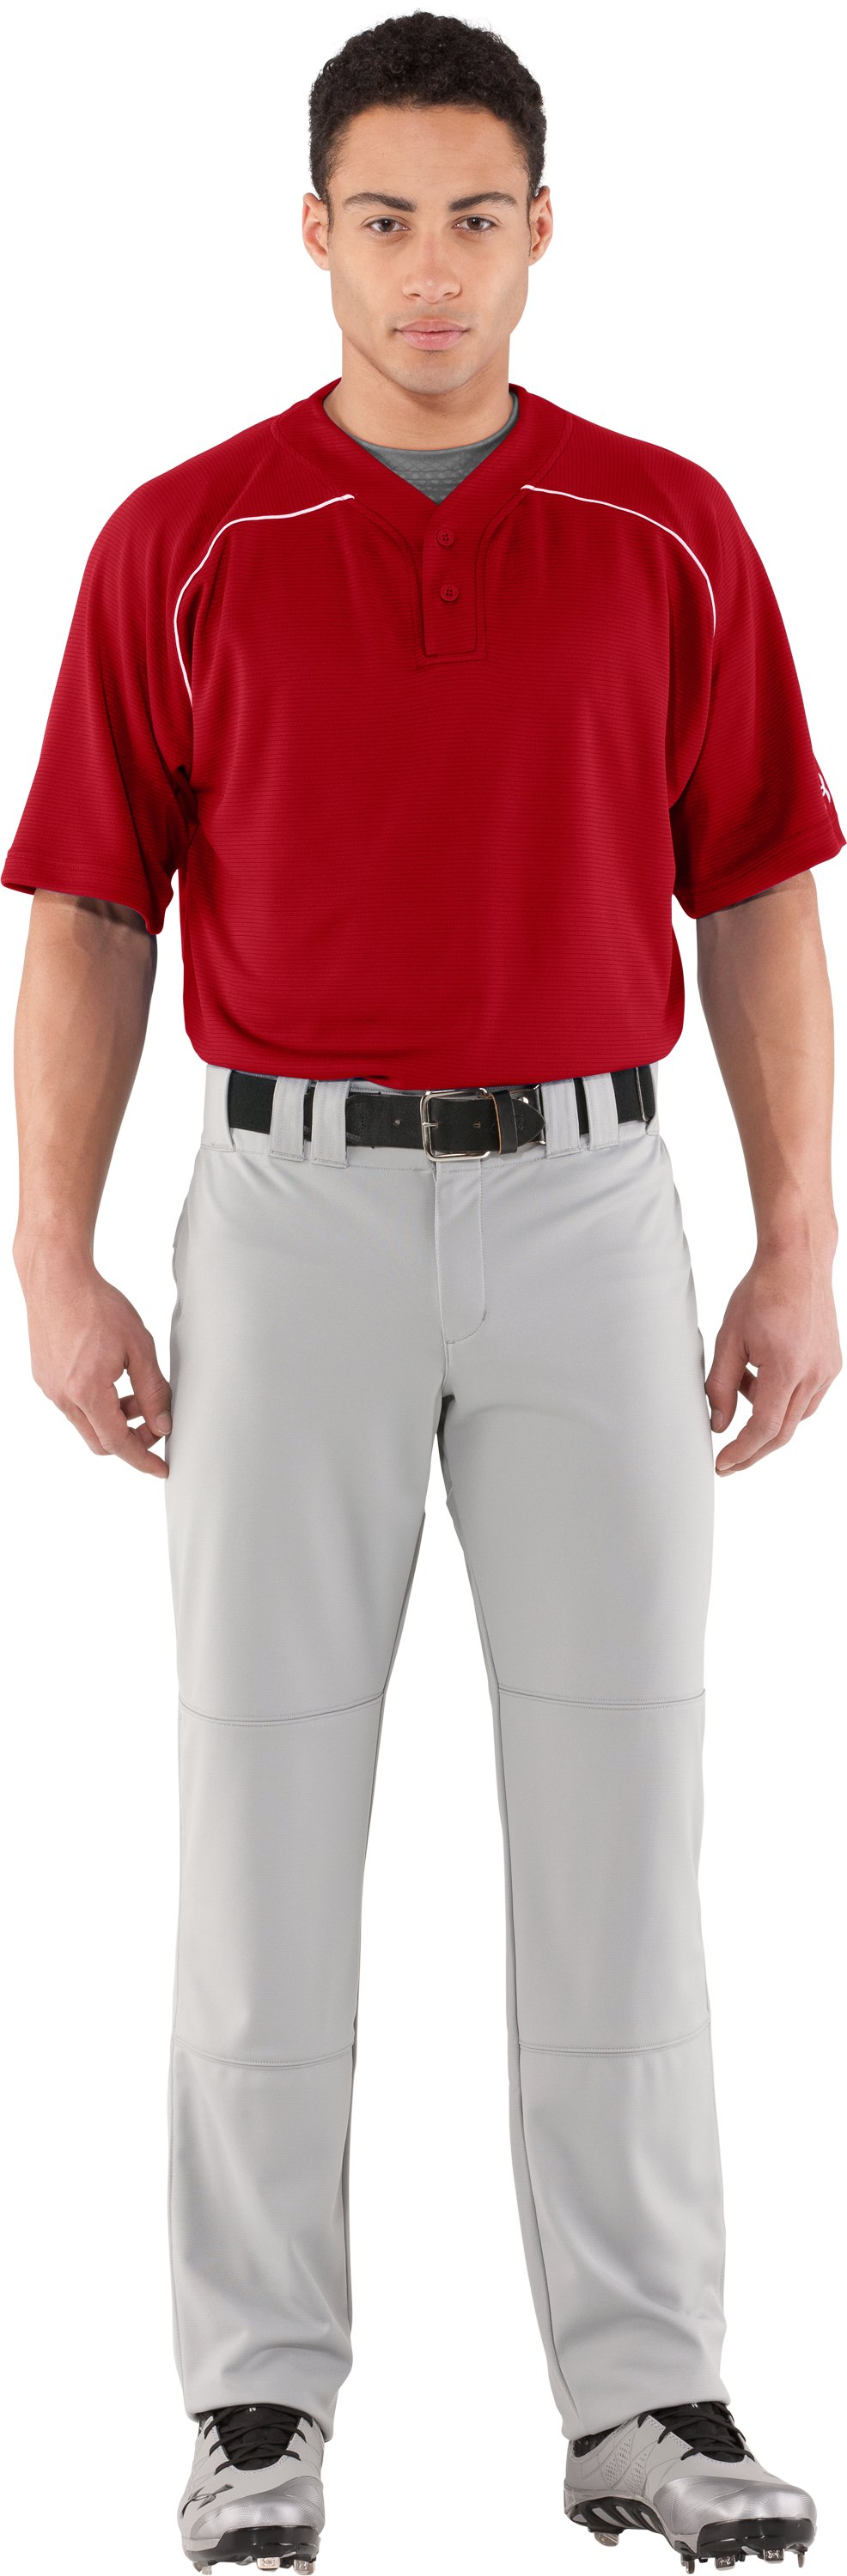 Men's UA Landsdown II Baseball Jersey, Red, zoomed image